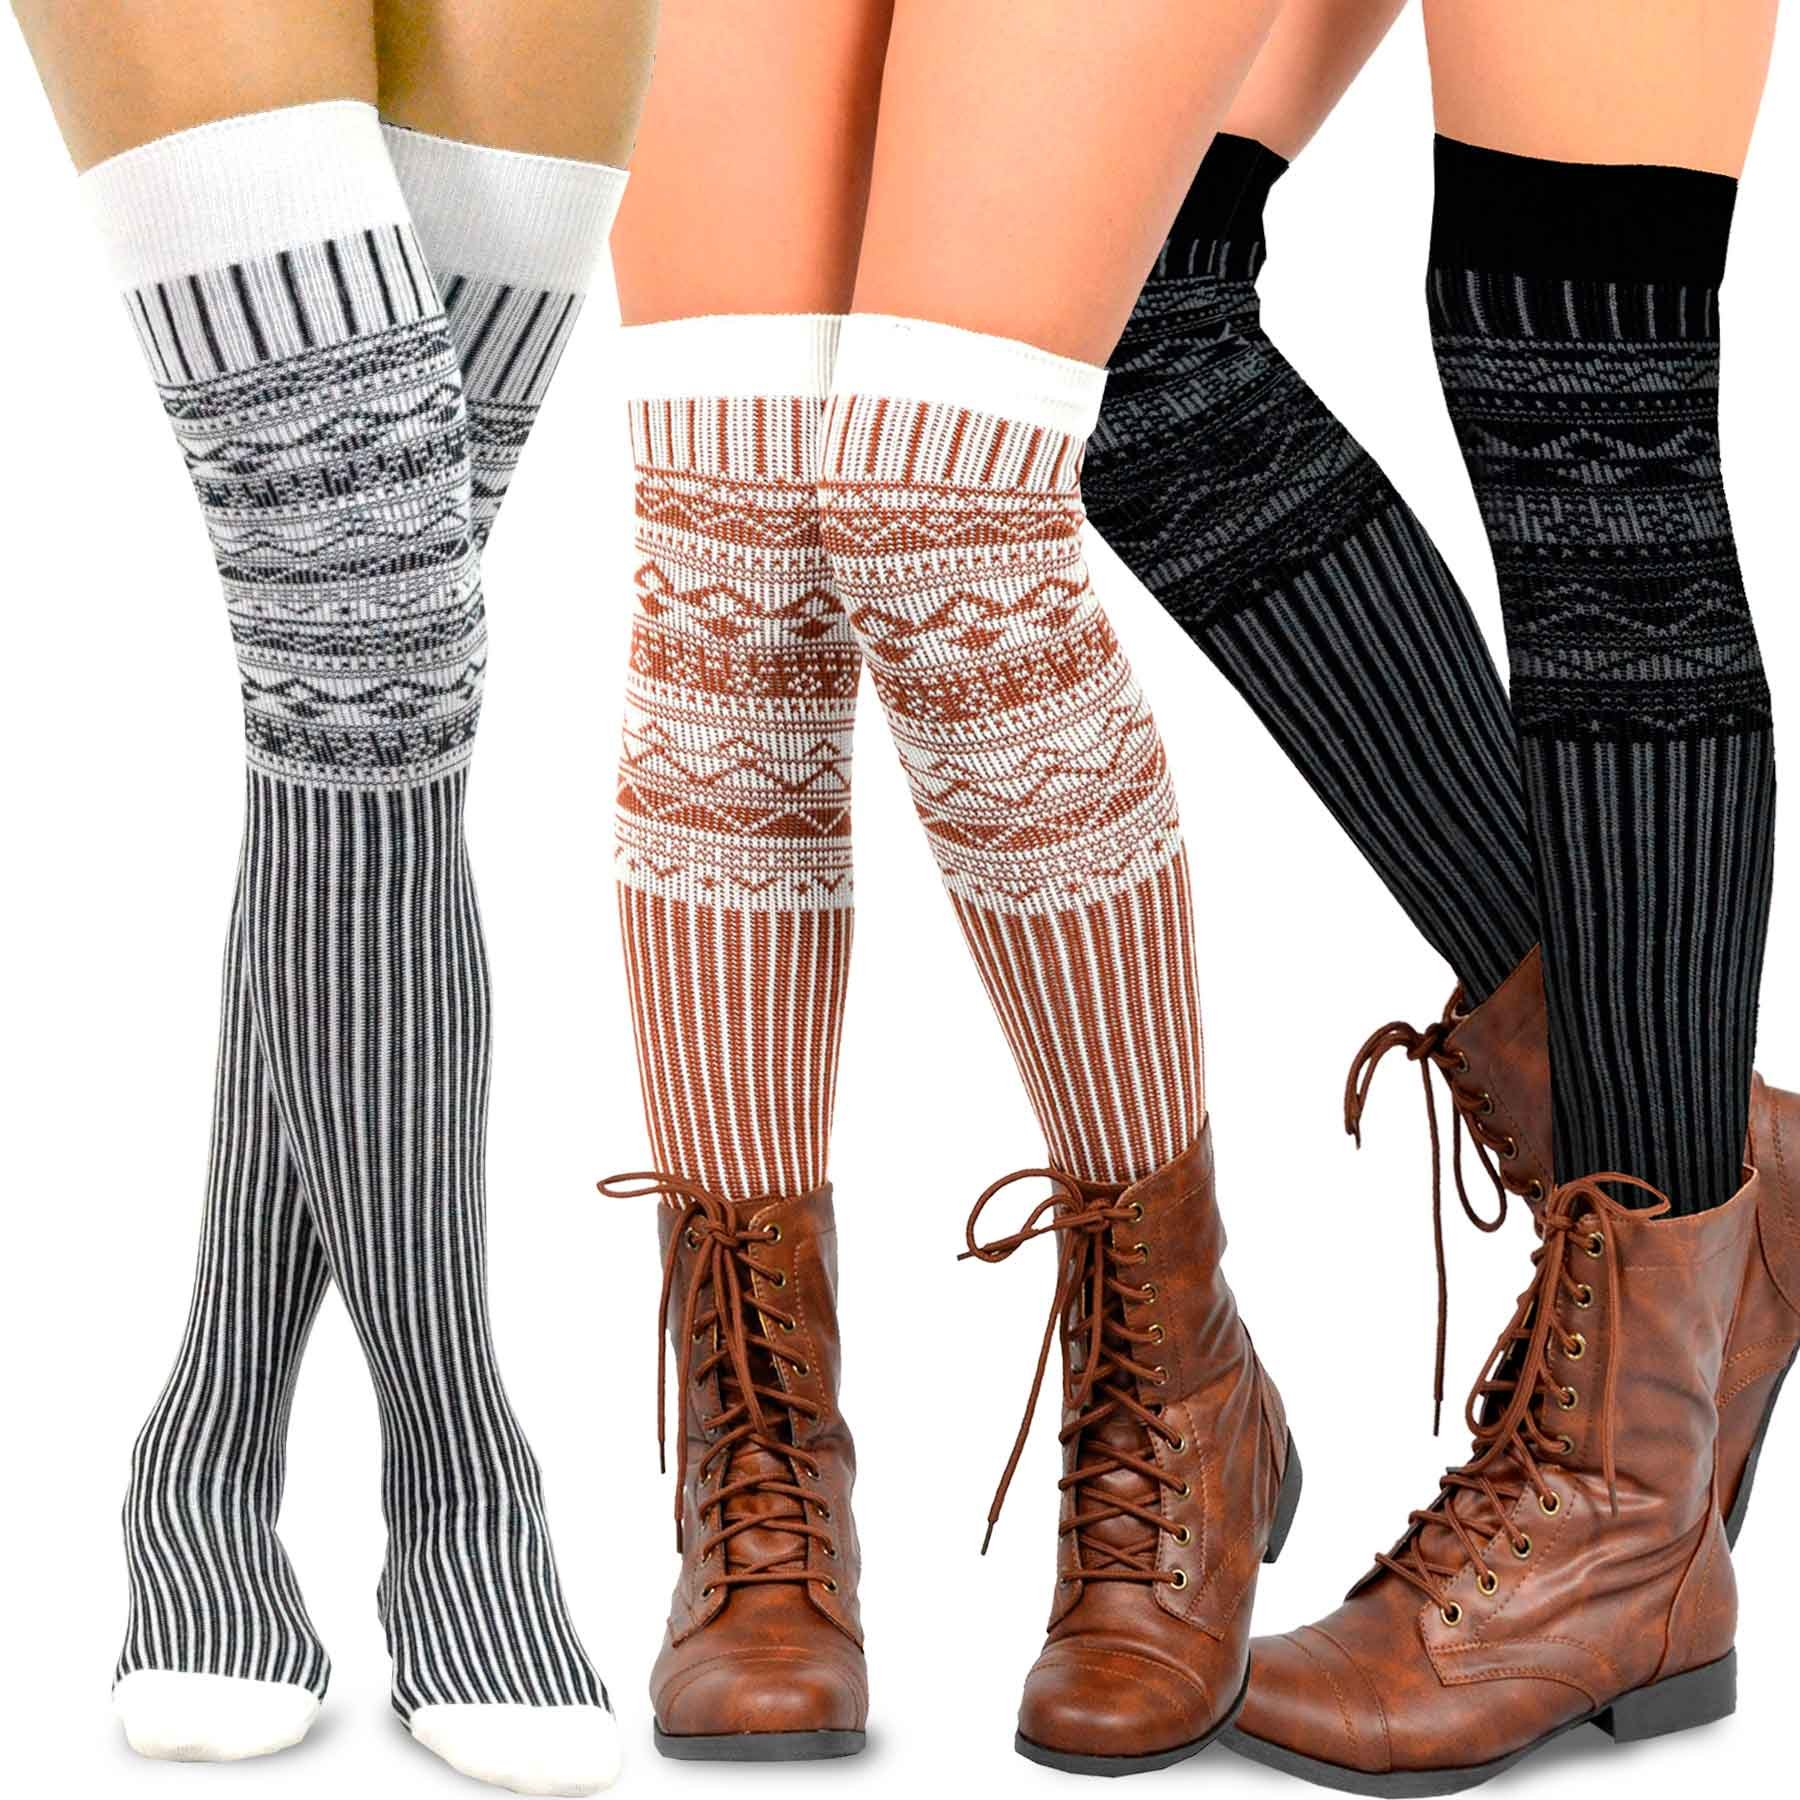 Teehee Women's Fashion Extra Long Cotton Thigh High Socks - 3 Pair Pack (Nordic Pattern)